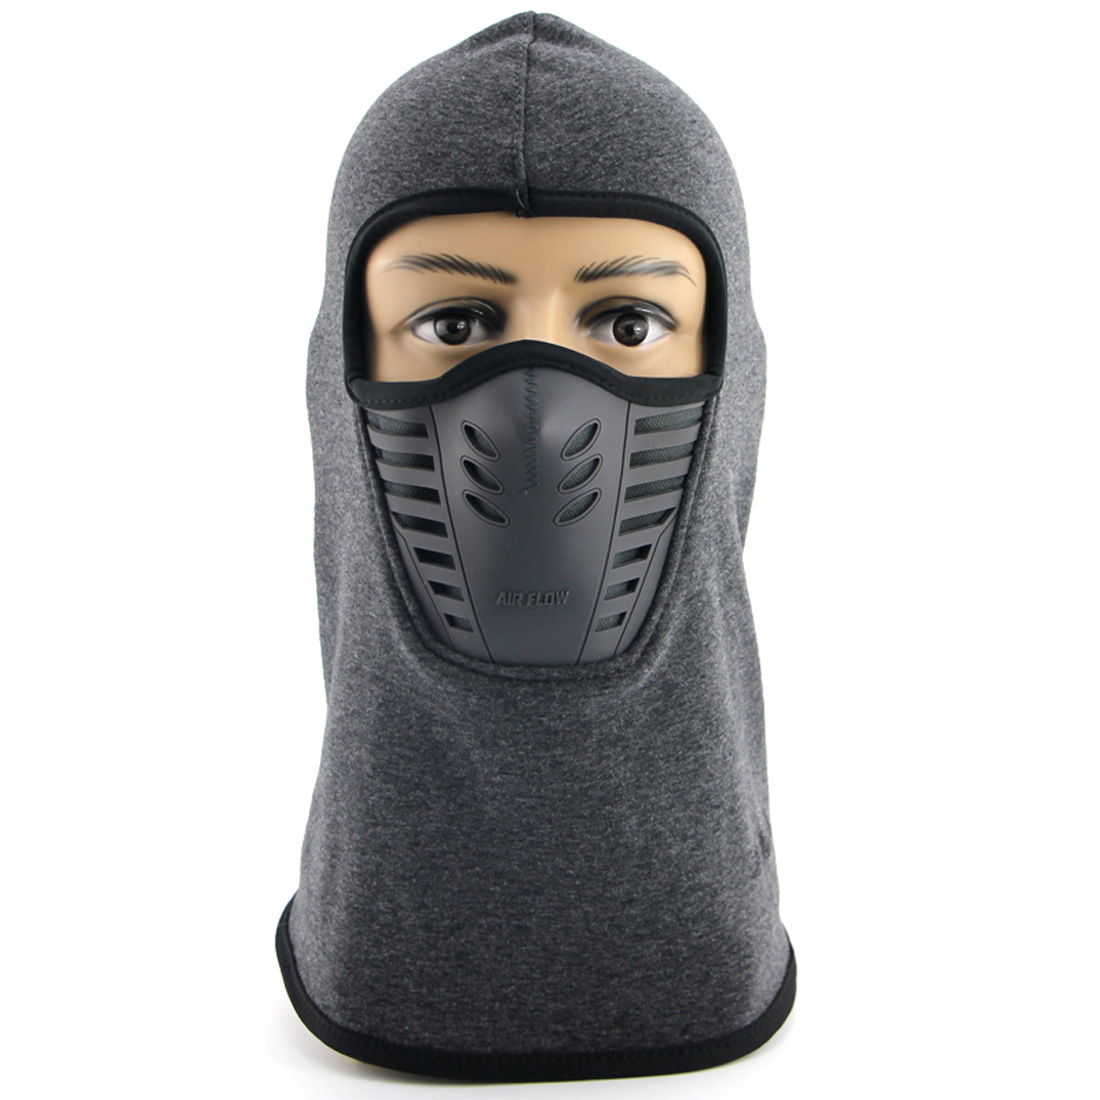 Balaclava Face Mask   Wind Resistant and Dust proof Winter Ski Mask Hoodie Style Gray by